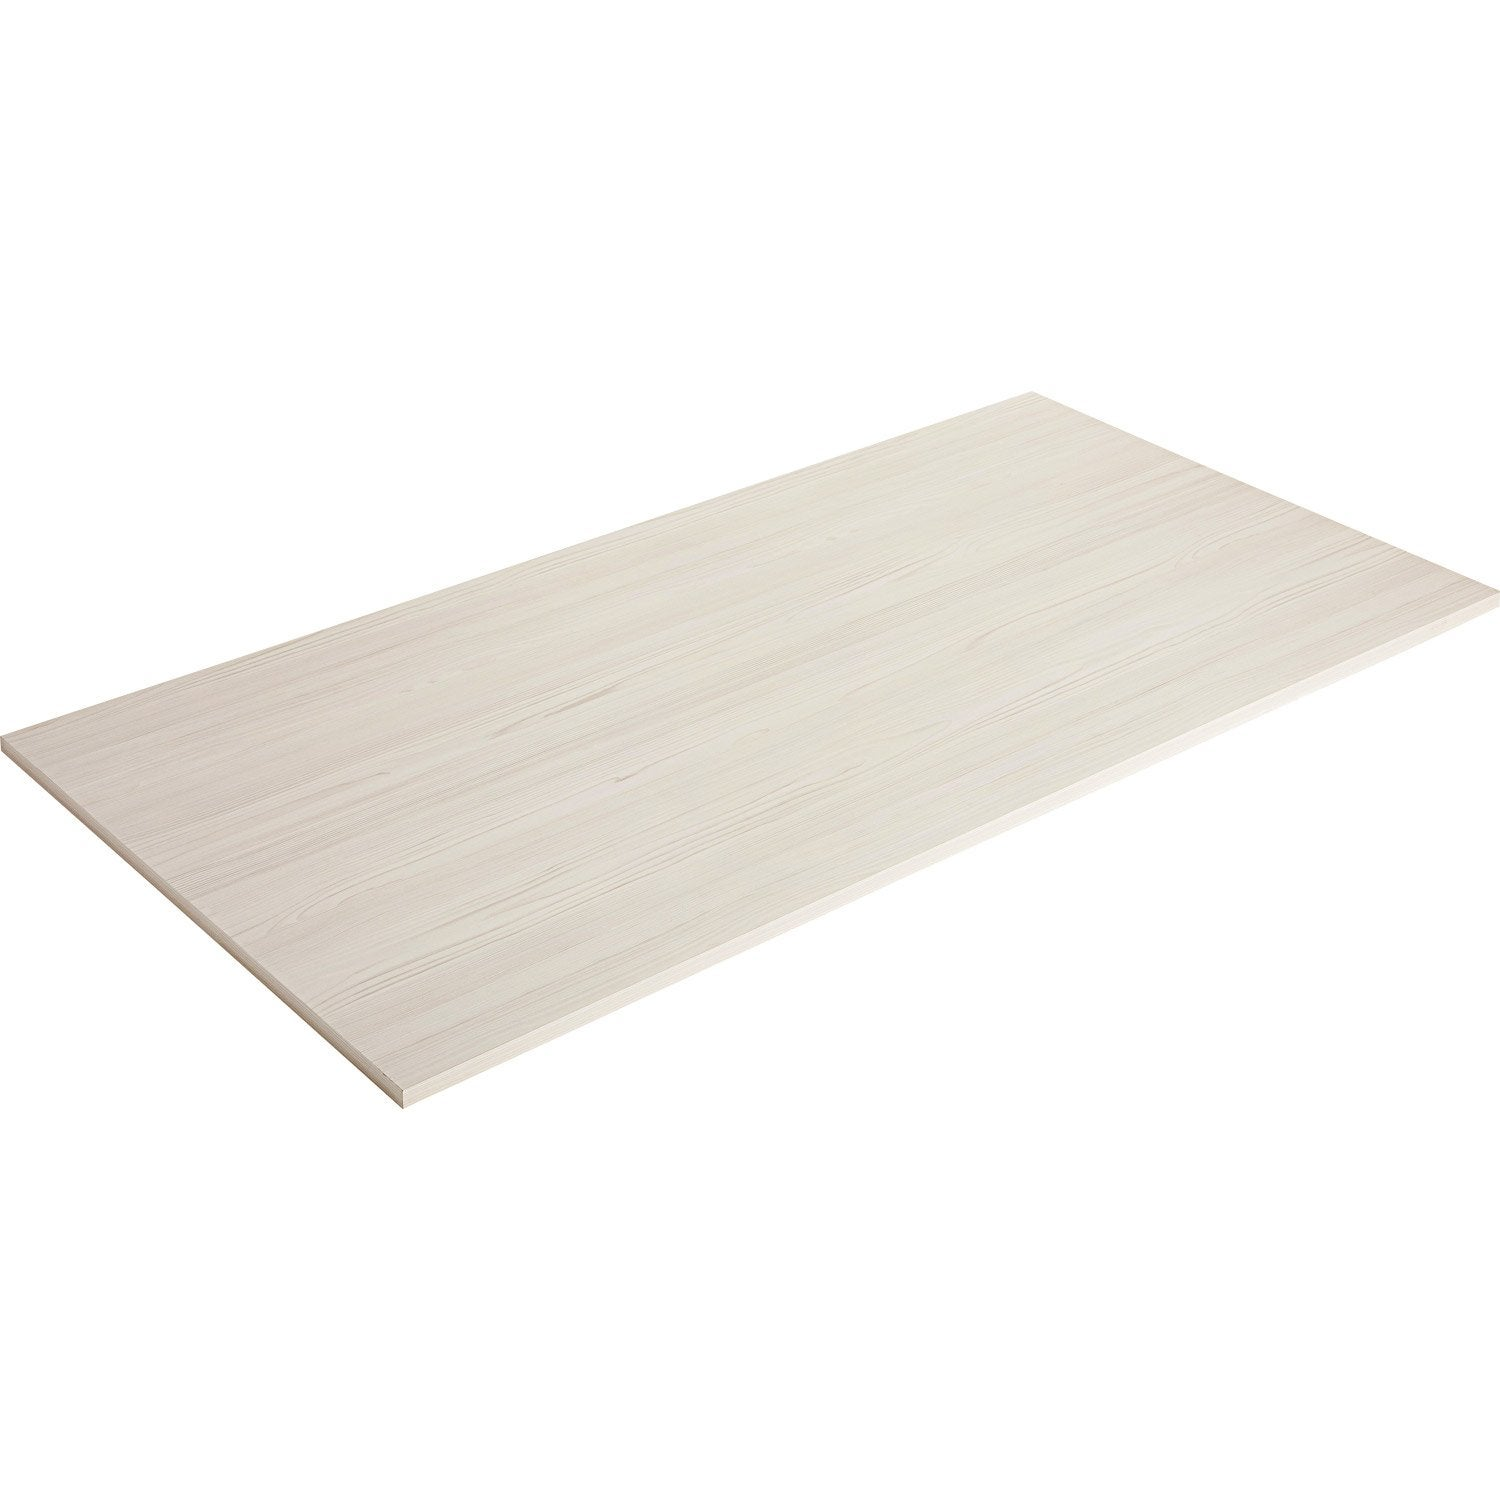 Plateau de table agglom r pin blanchi spaceo x cm x mm l - Ikea plateau de table ...